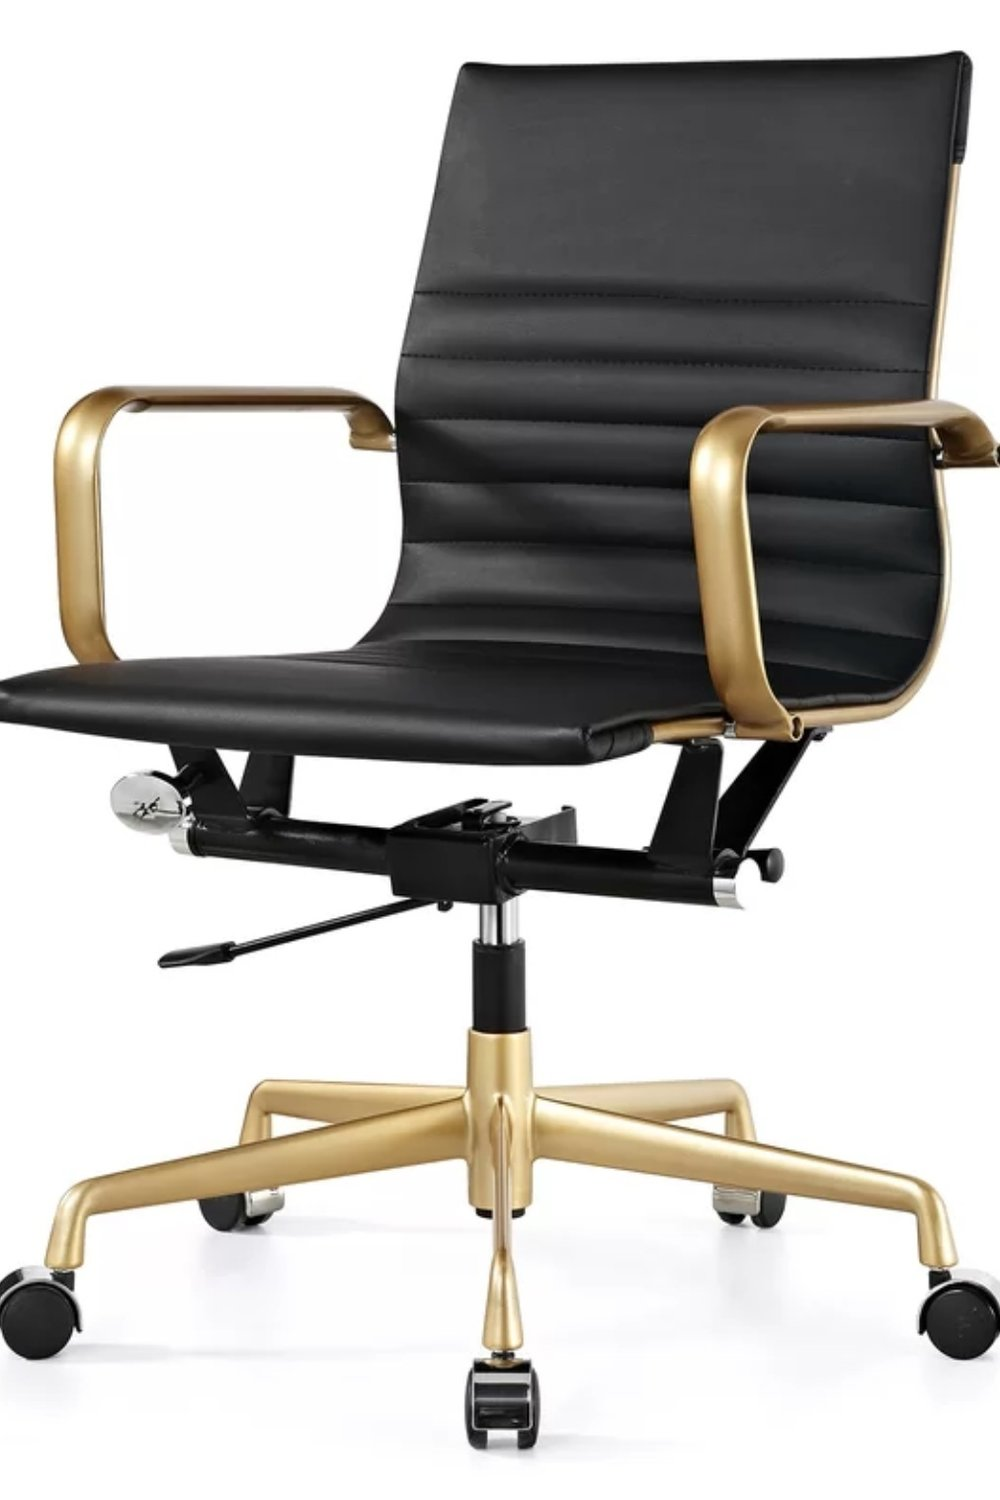 Vegan Leather Office Chair Black and Gold